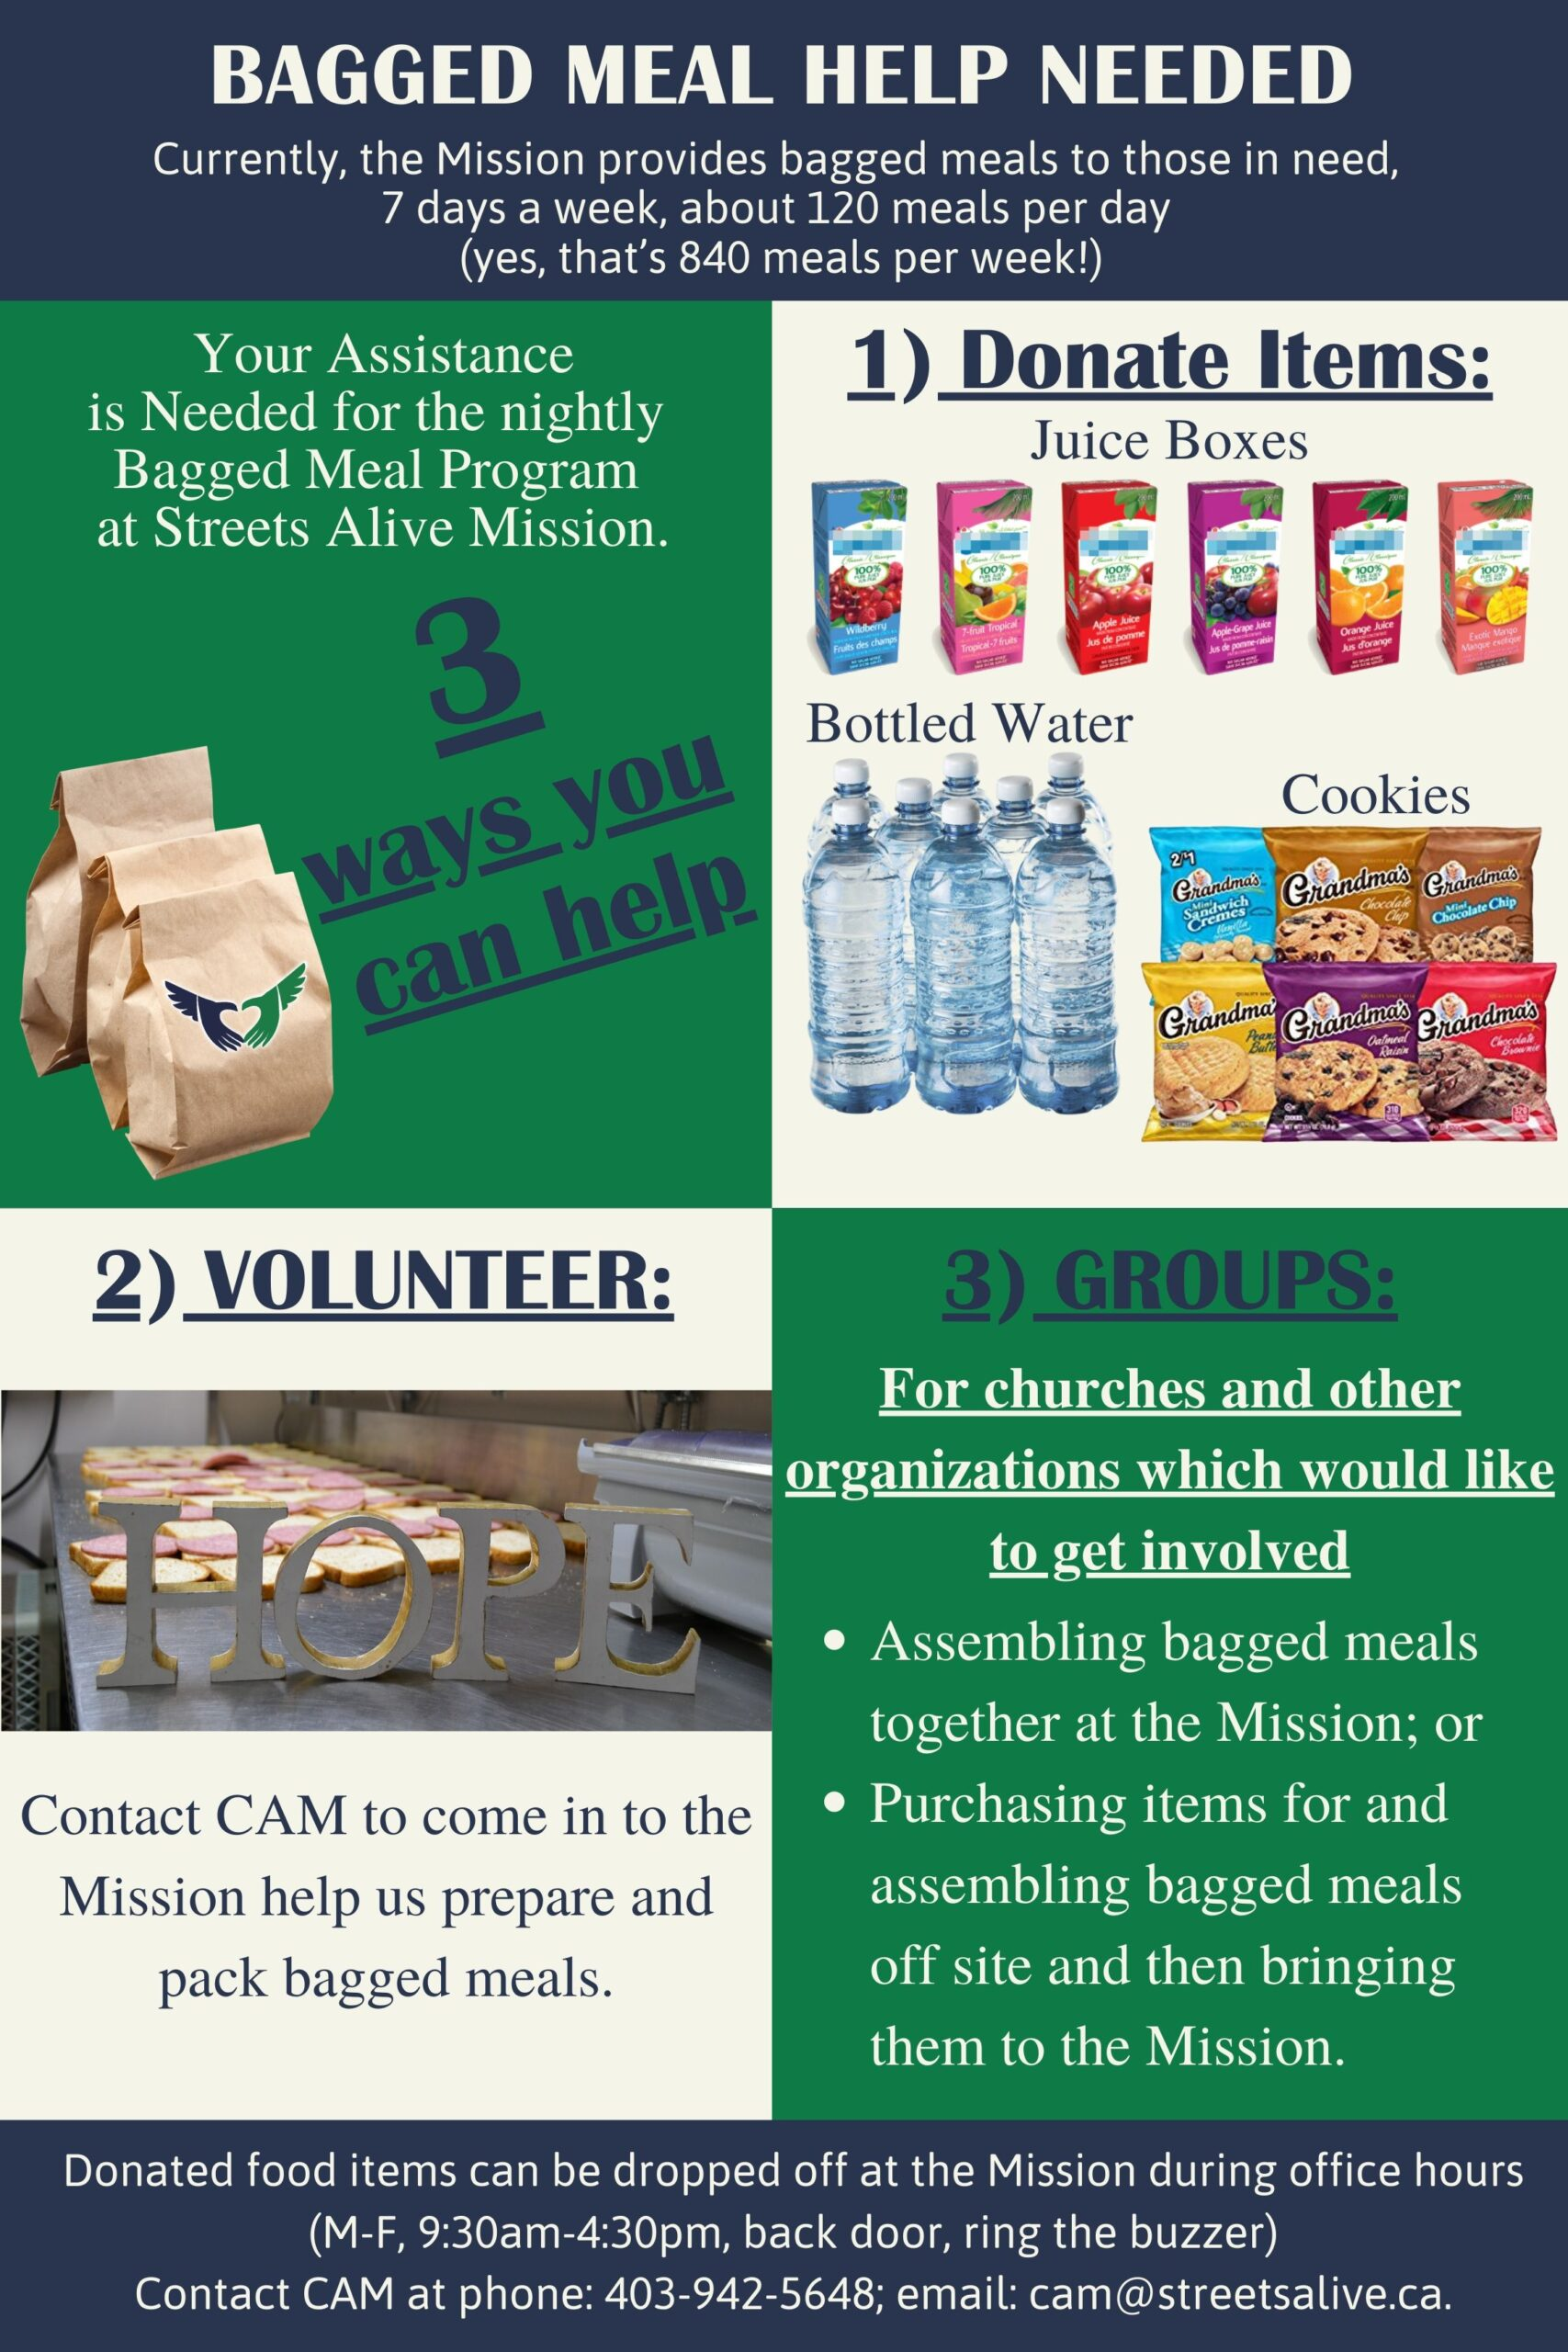 Bagged Meal Support - 3 ways to help